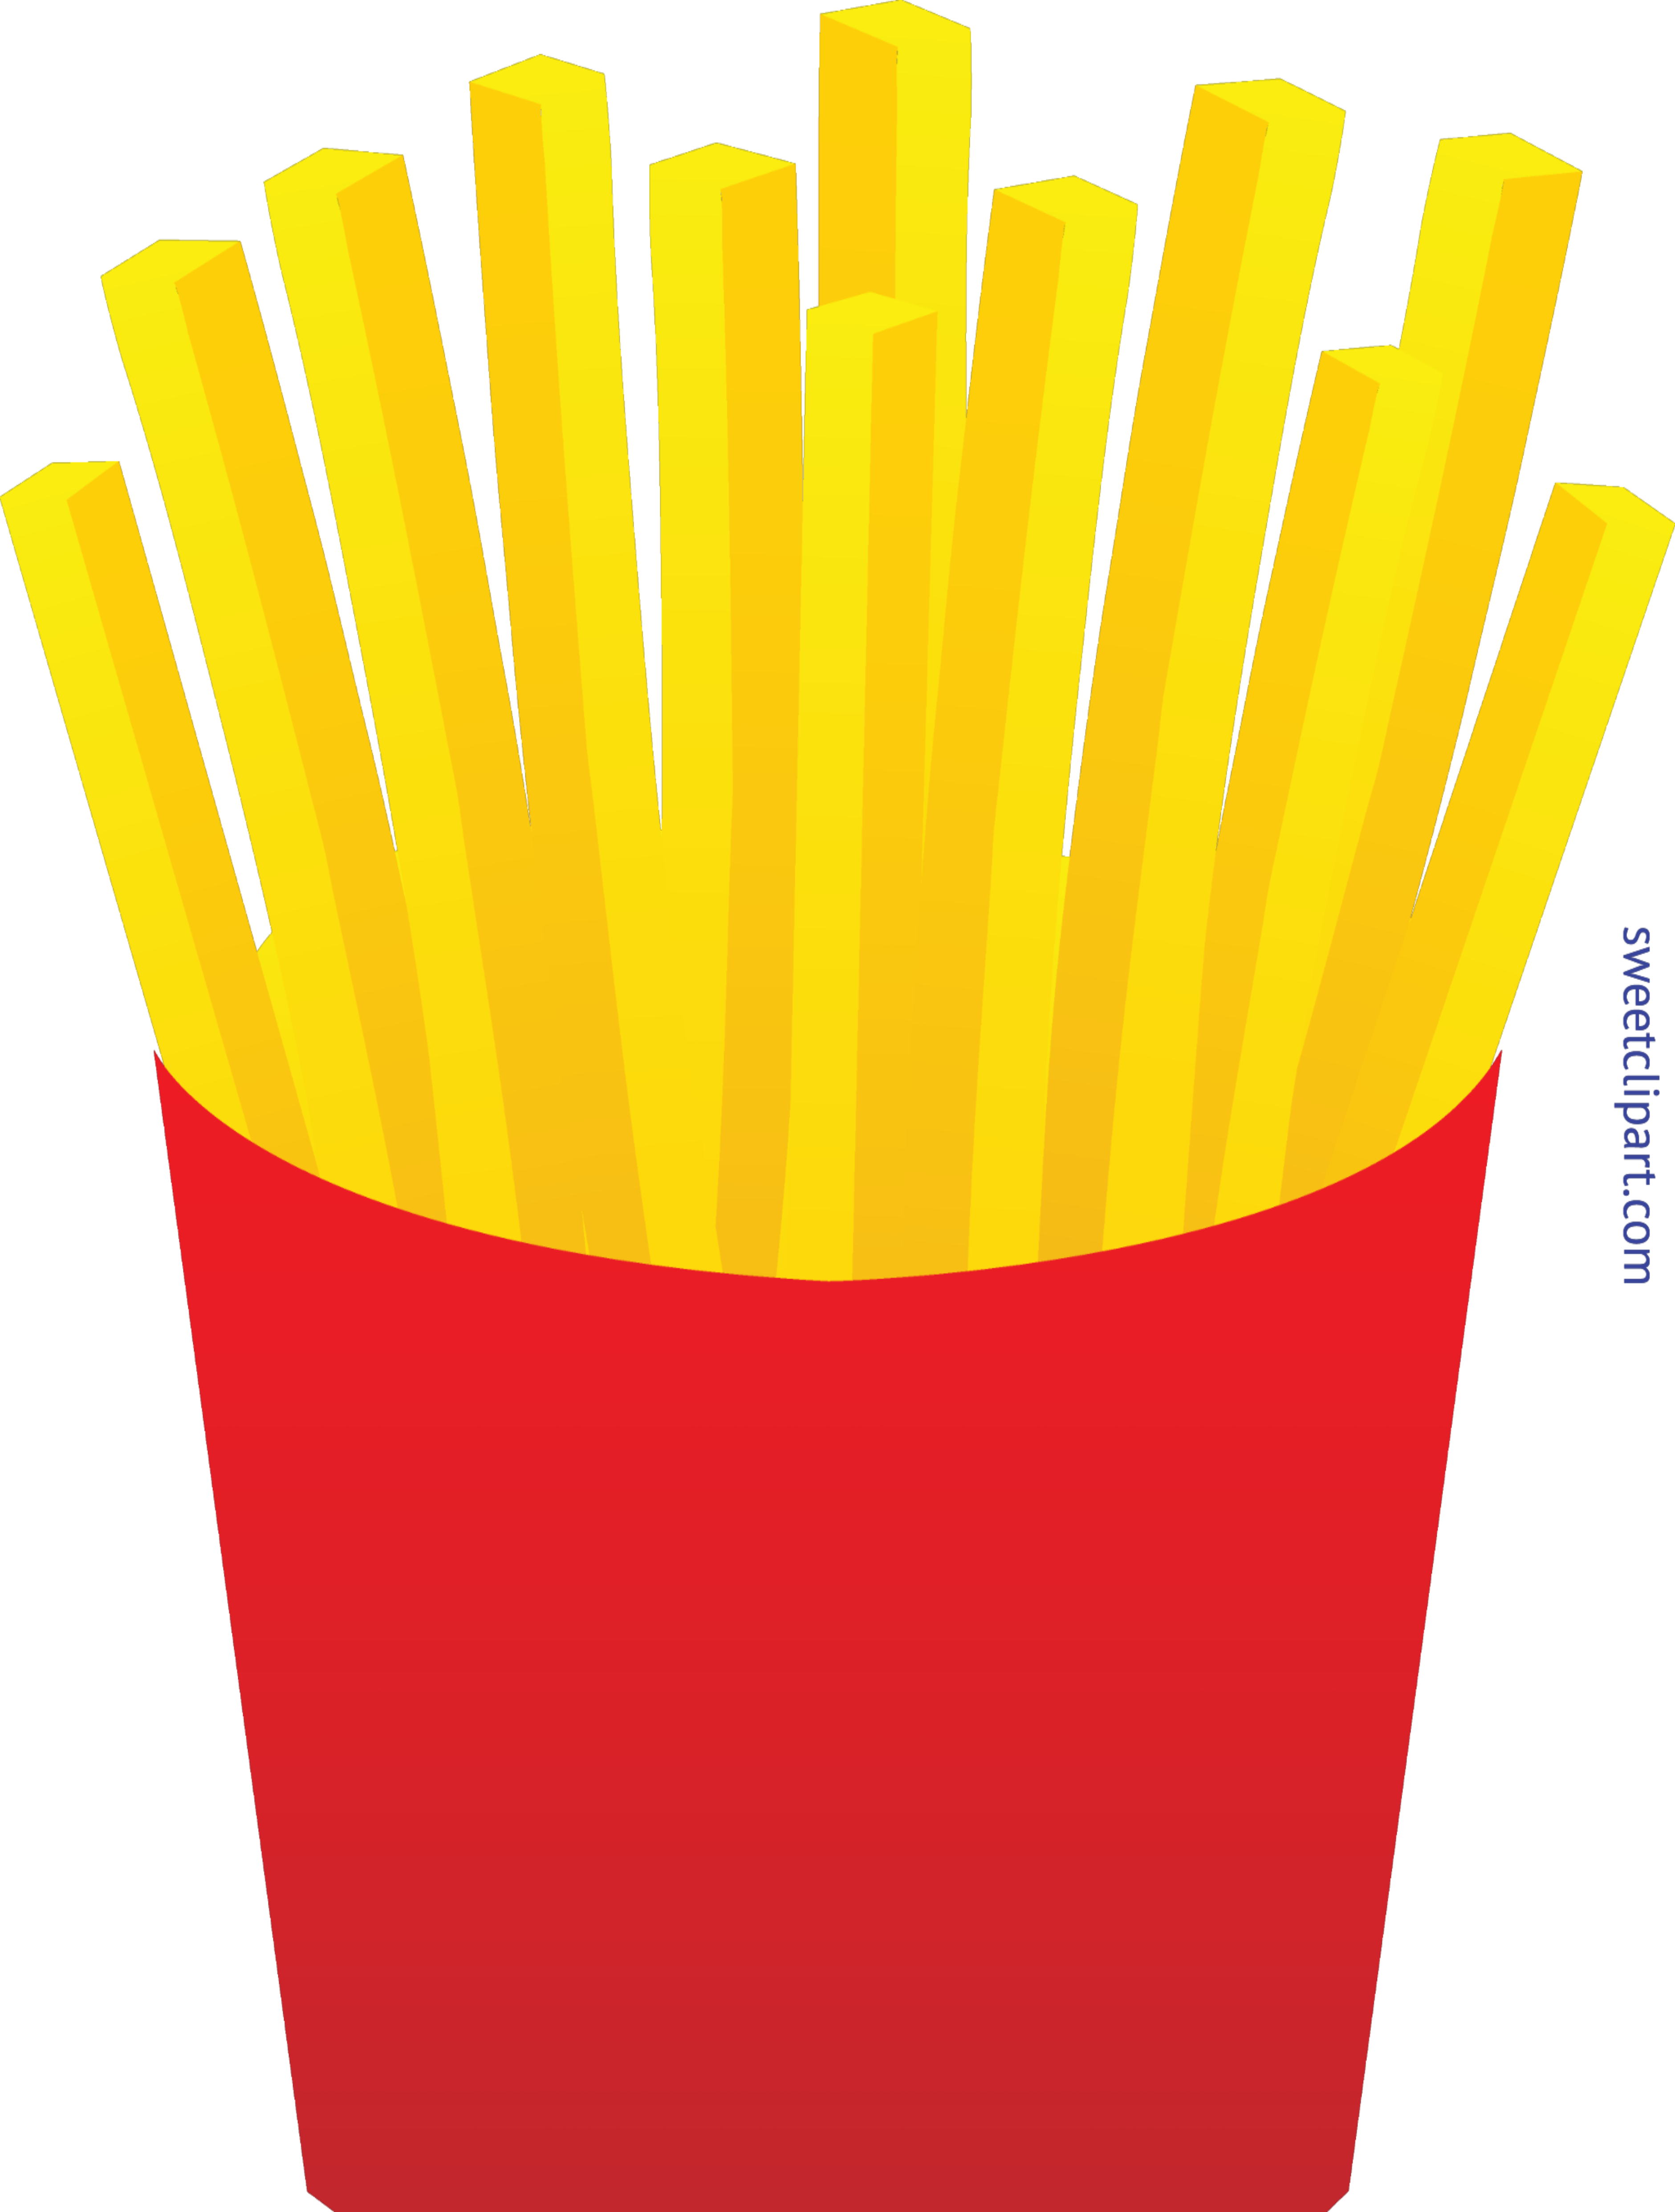 French fries pictures clipart image black and white French Fries Clip Art - Sweet Clip Art image black and white